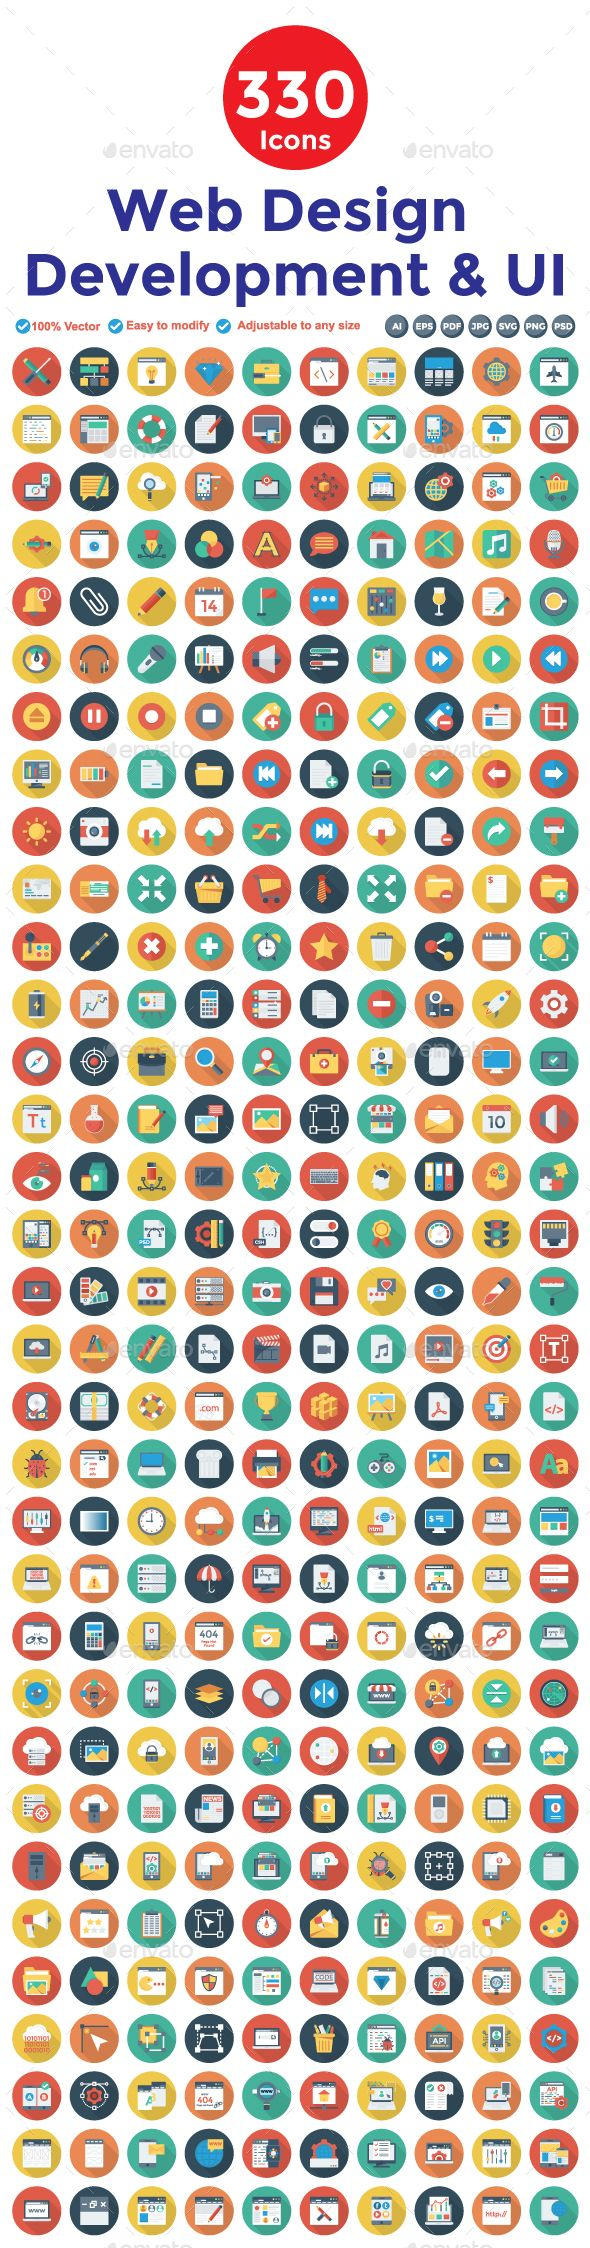 360 Flat Circle Shadow Web #Design Developemnt & UI Icons - Web #Icons Download here: https://graphicriver.net/item/360-flat-circle-shadow-web-design-developemnt-ui-icons/19377564?ref=alena994